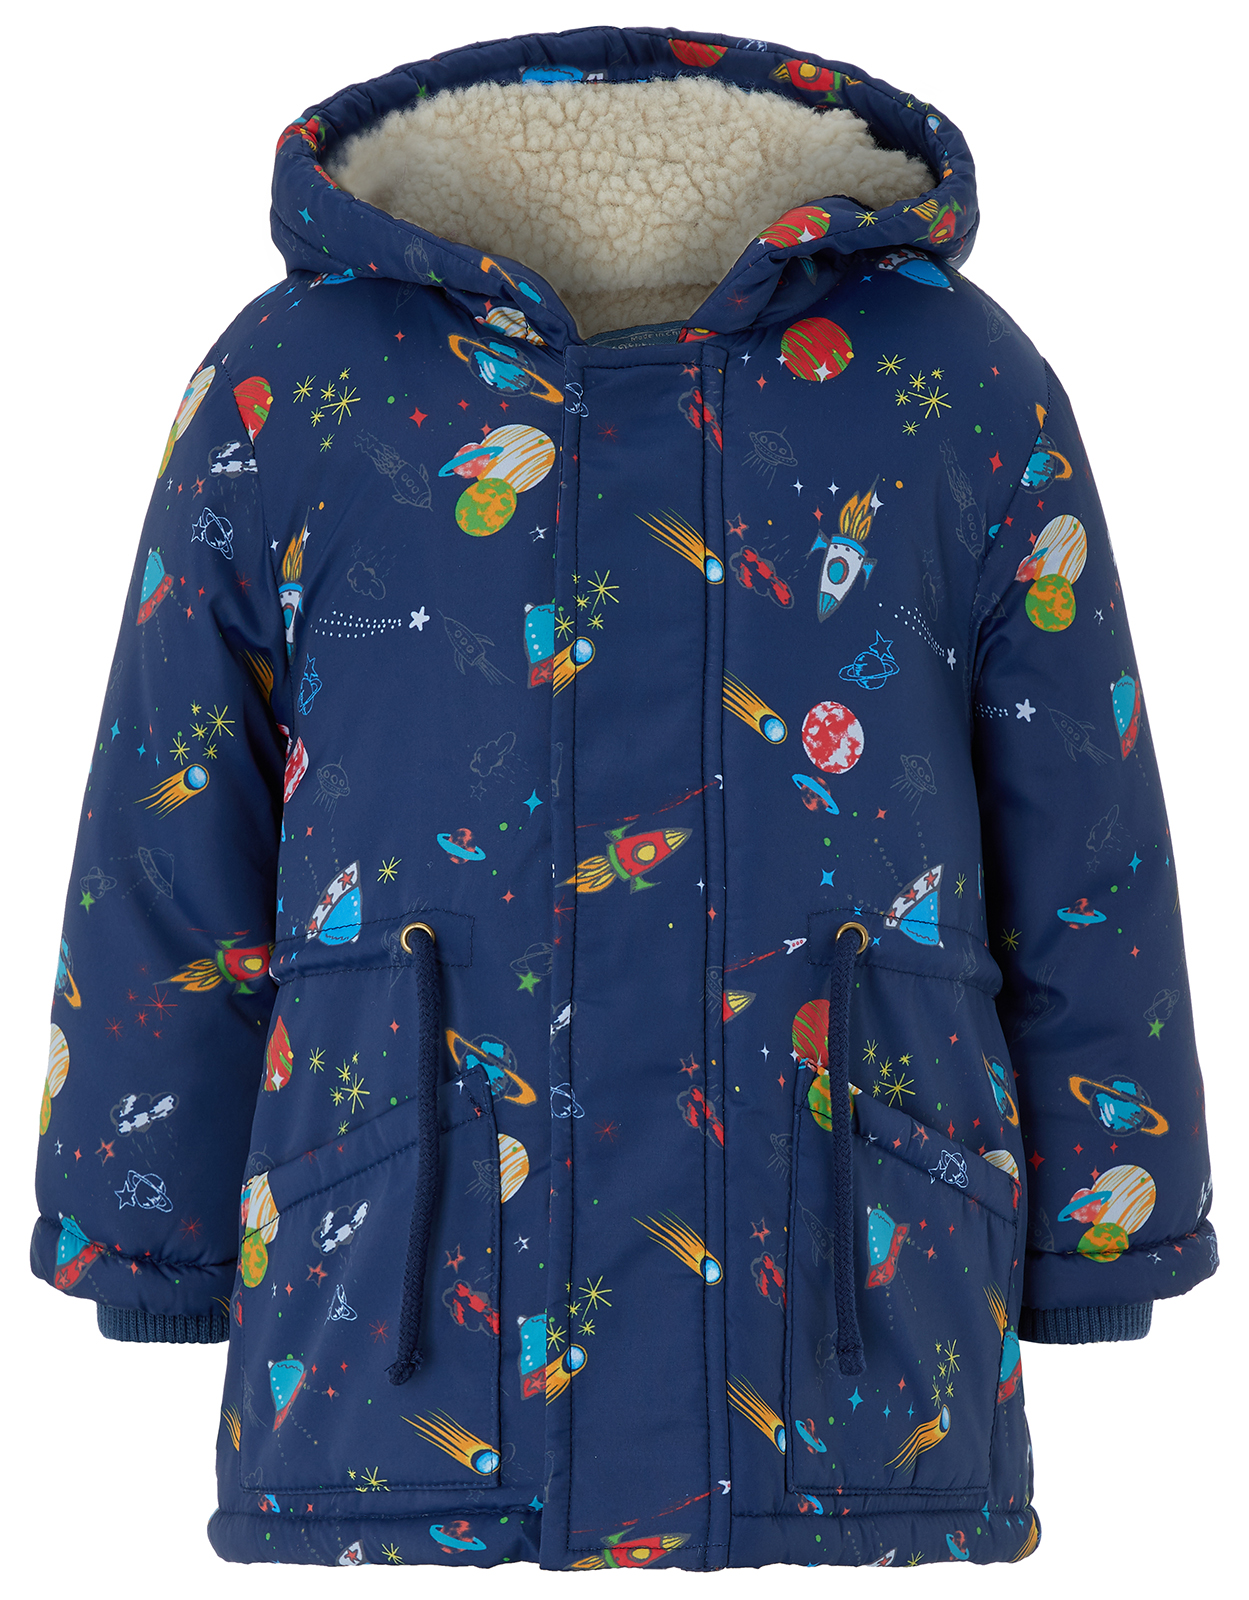 Monsoon Space Printed Padded Coat